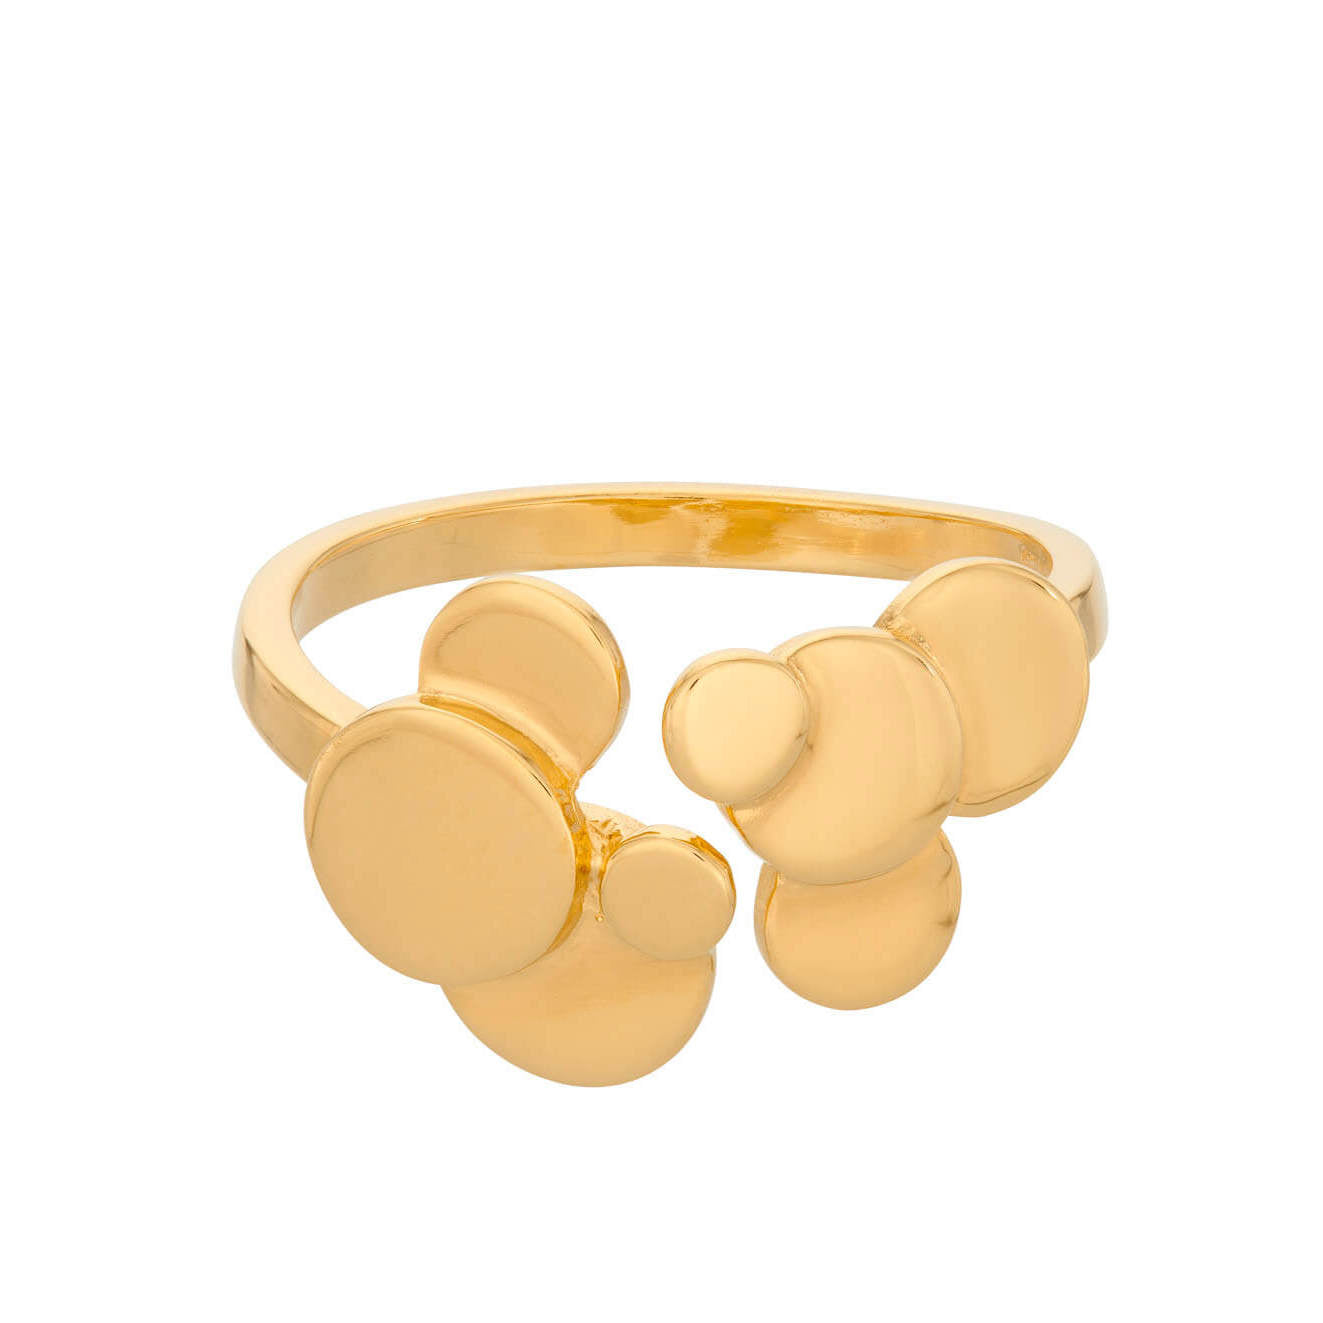 Pernille Corydon Jewellery - Sheen Ring - INGAR